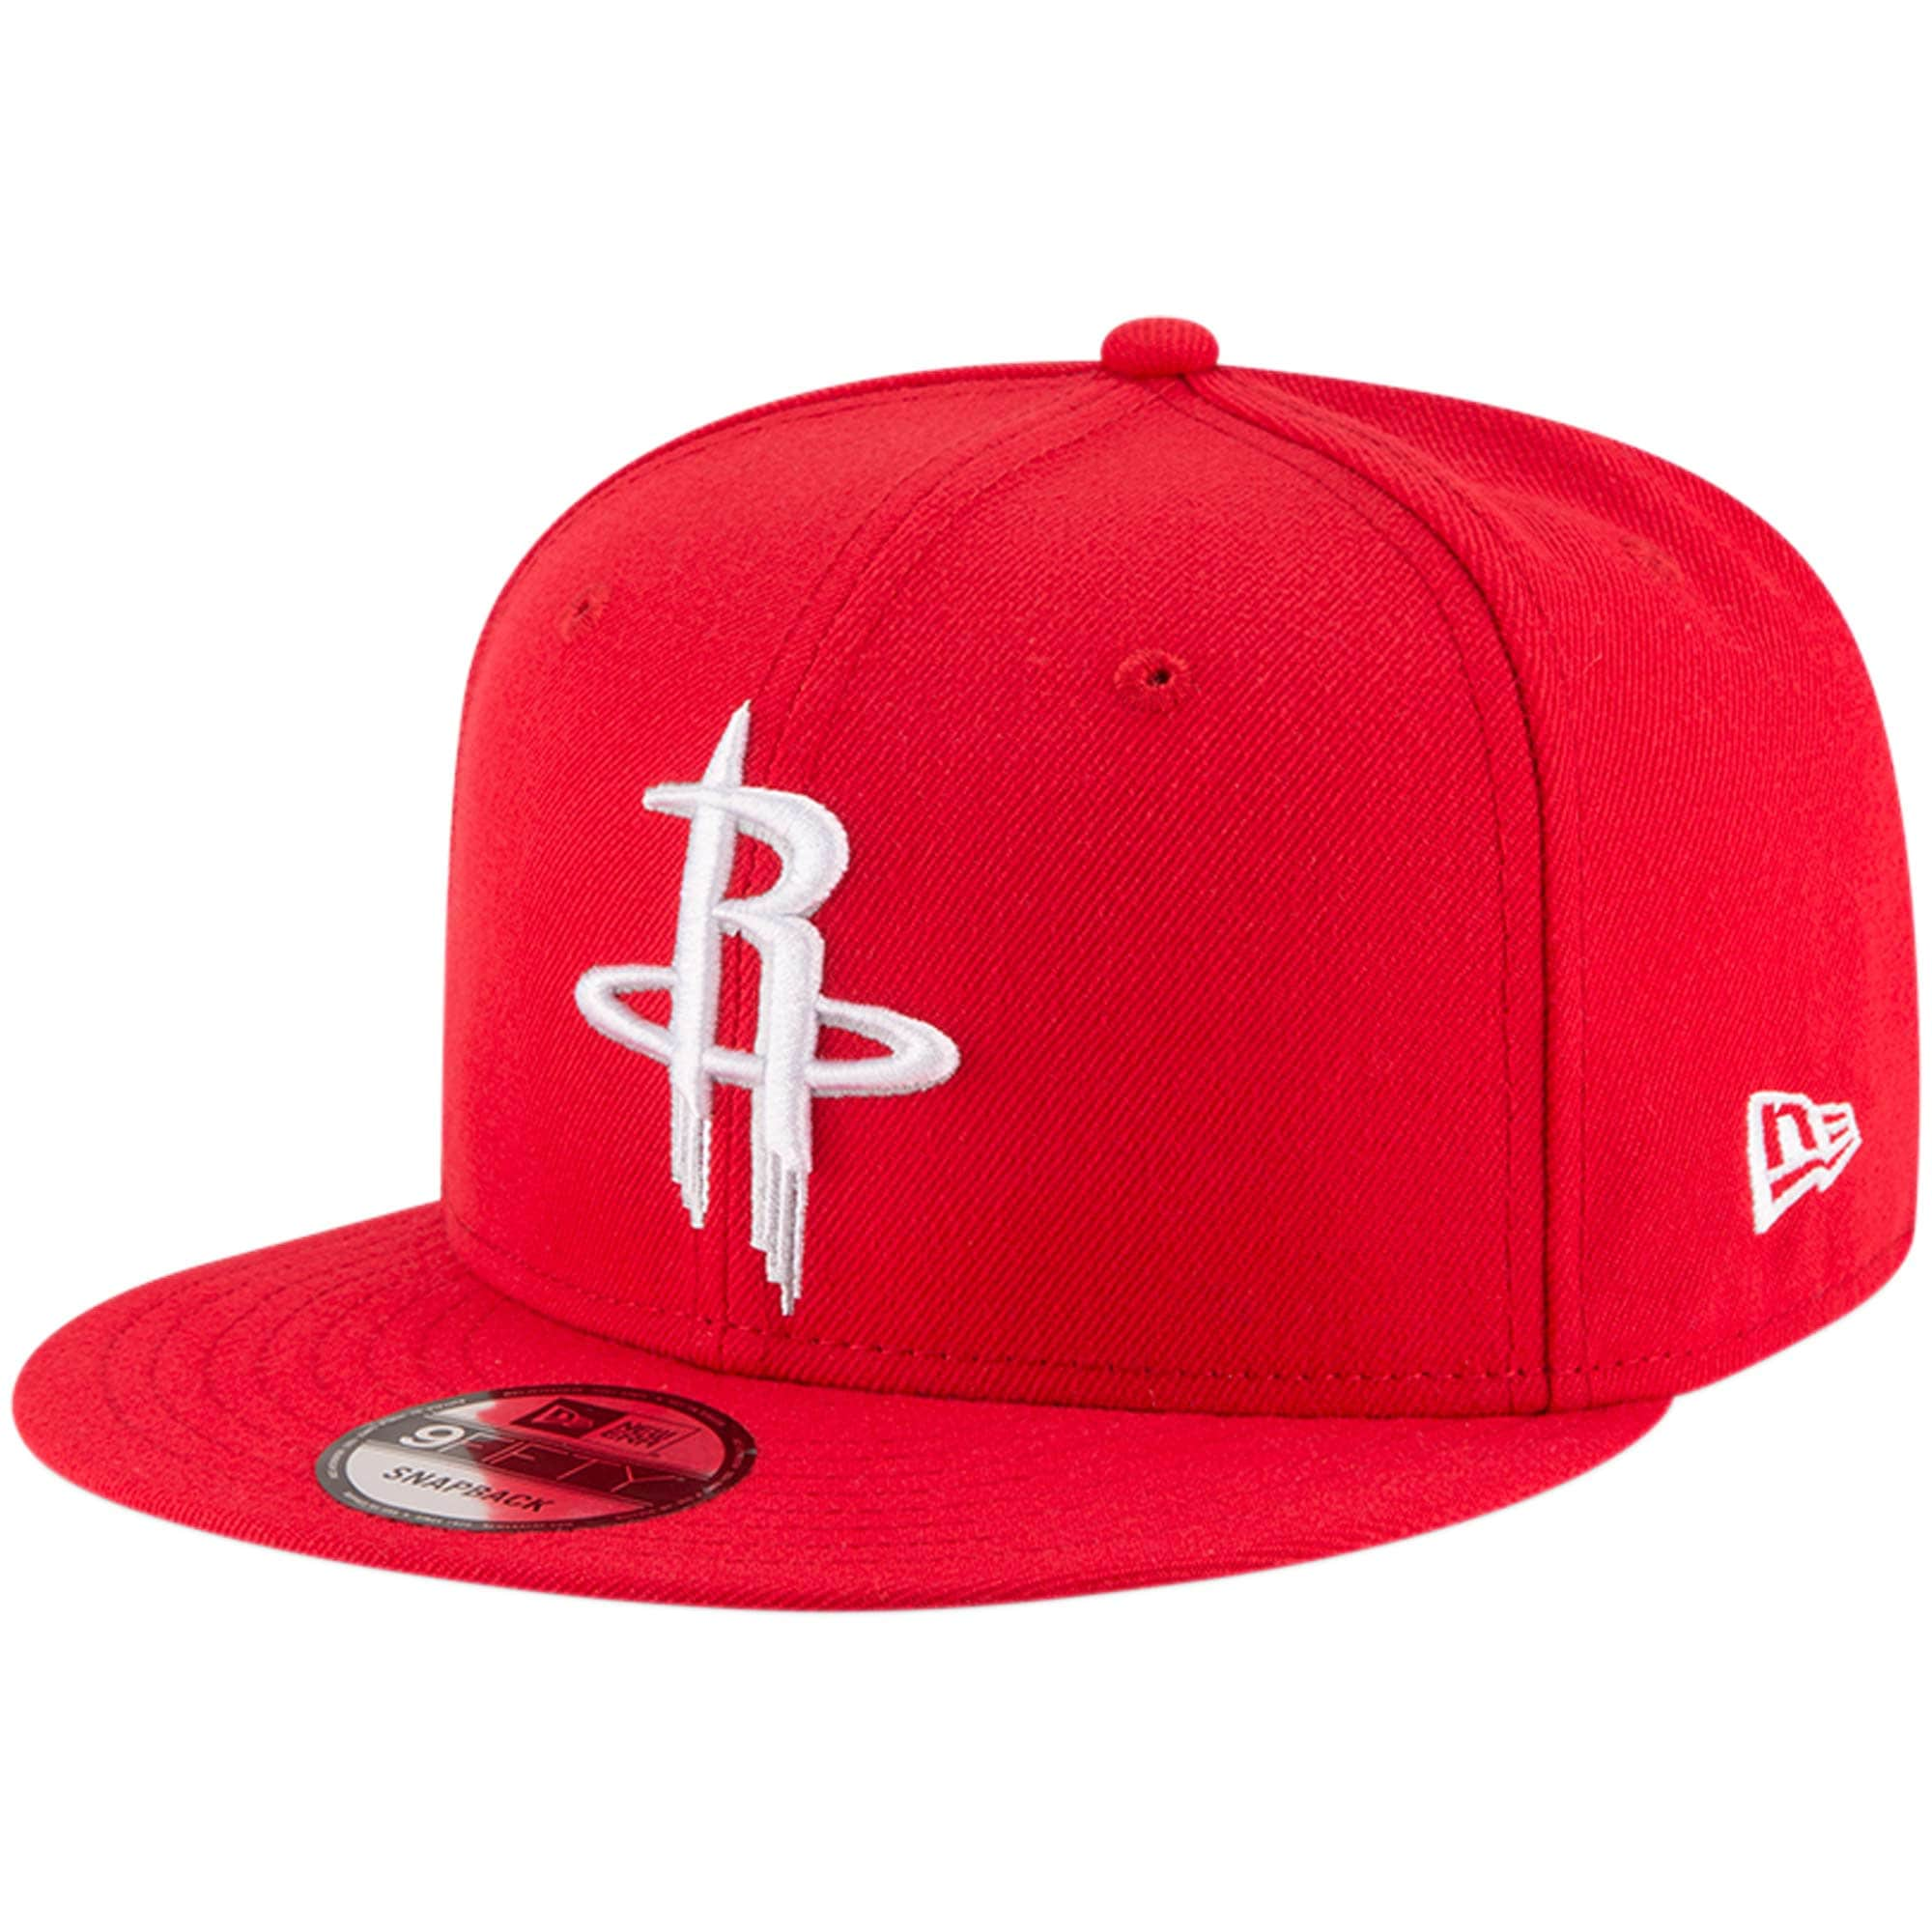 Houston Rockets New Era Official Team Color 9FIFTY Adjustable Snapback Hat - Red